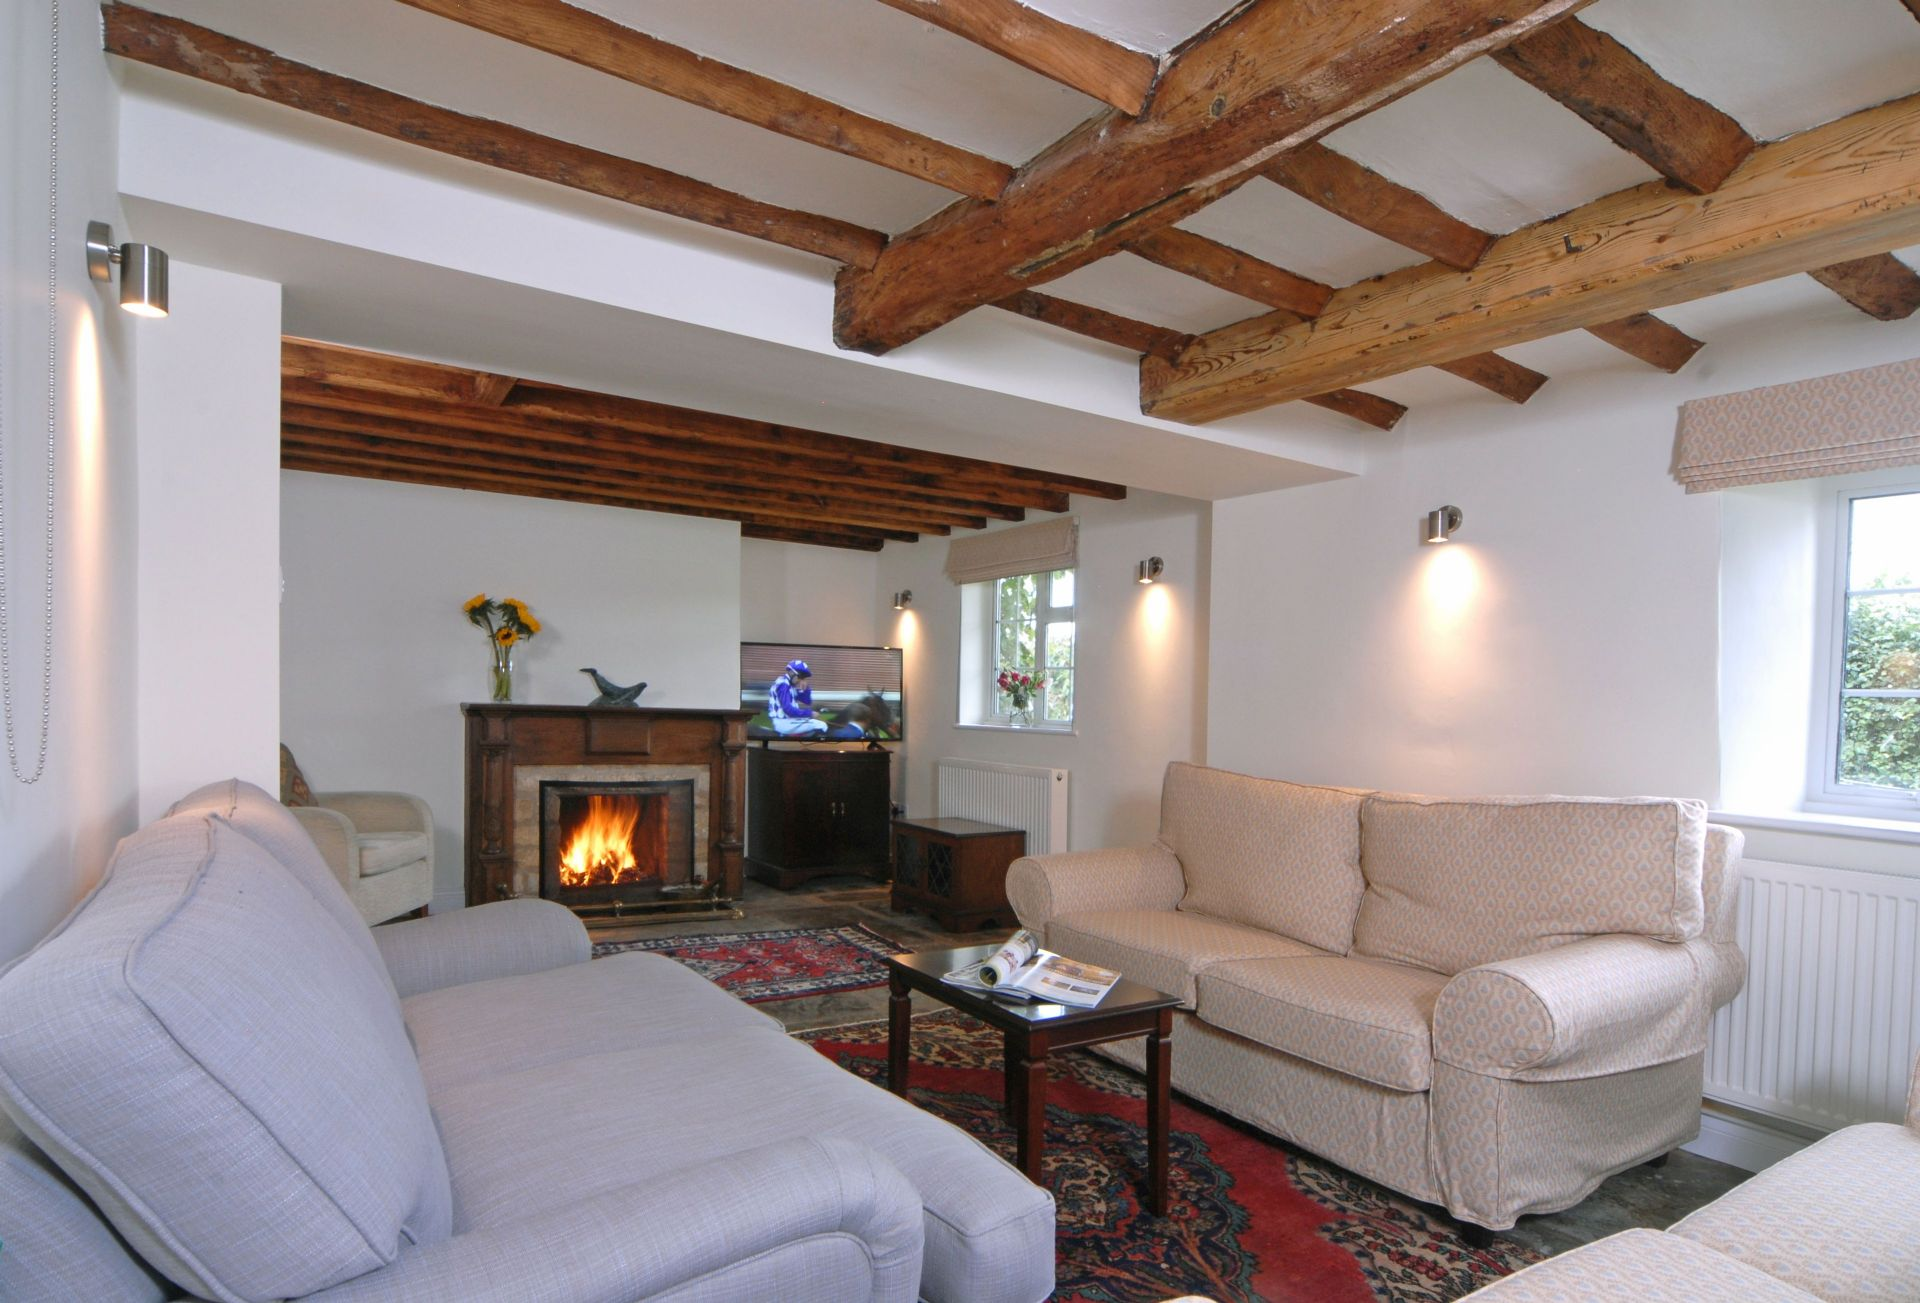 Ground floor: Sitting room with original flagstone flooring and an open fireplace